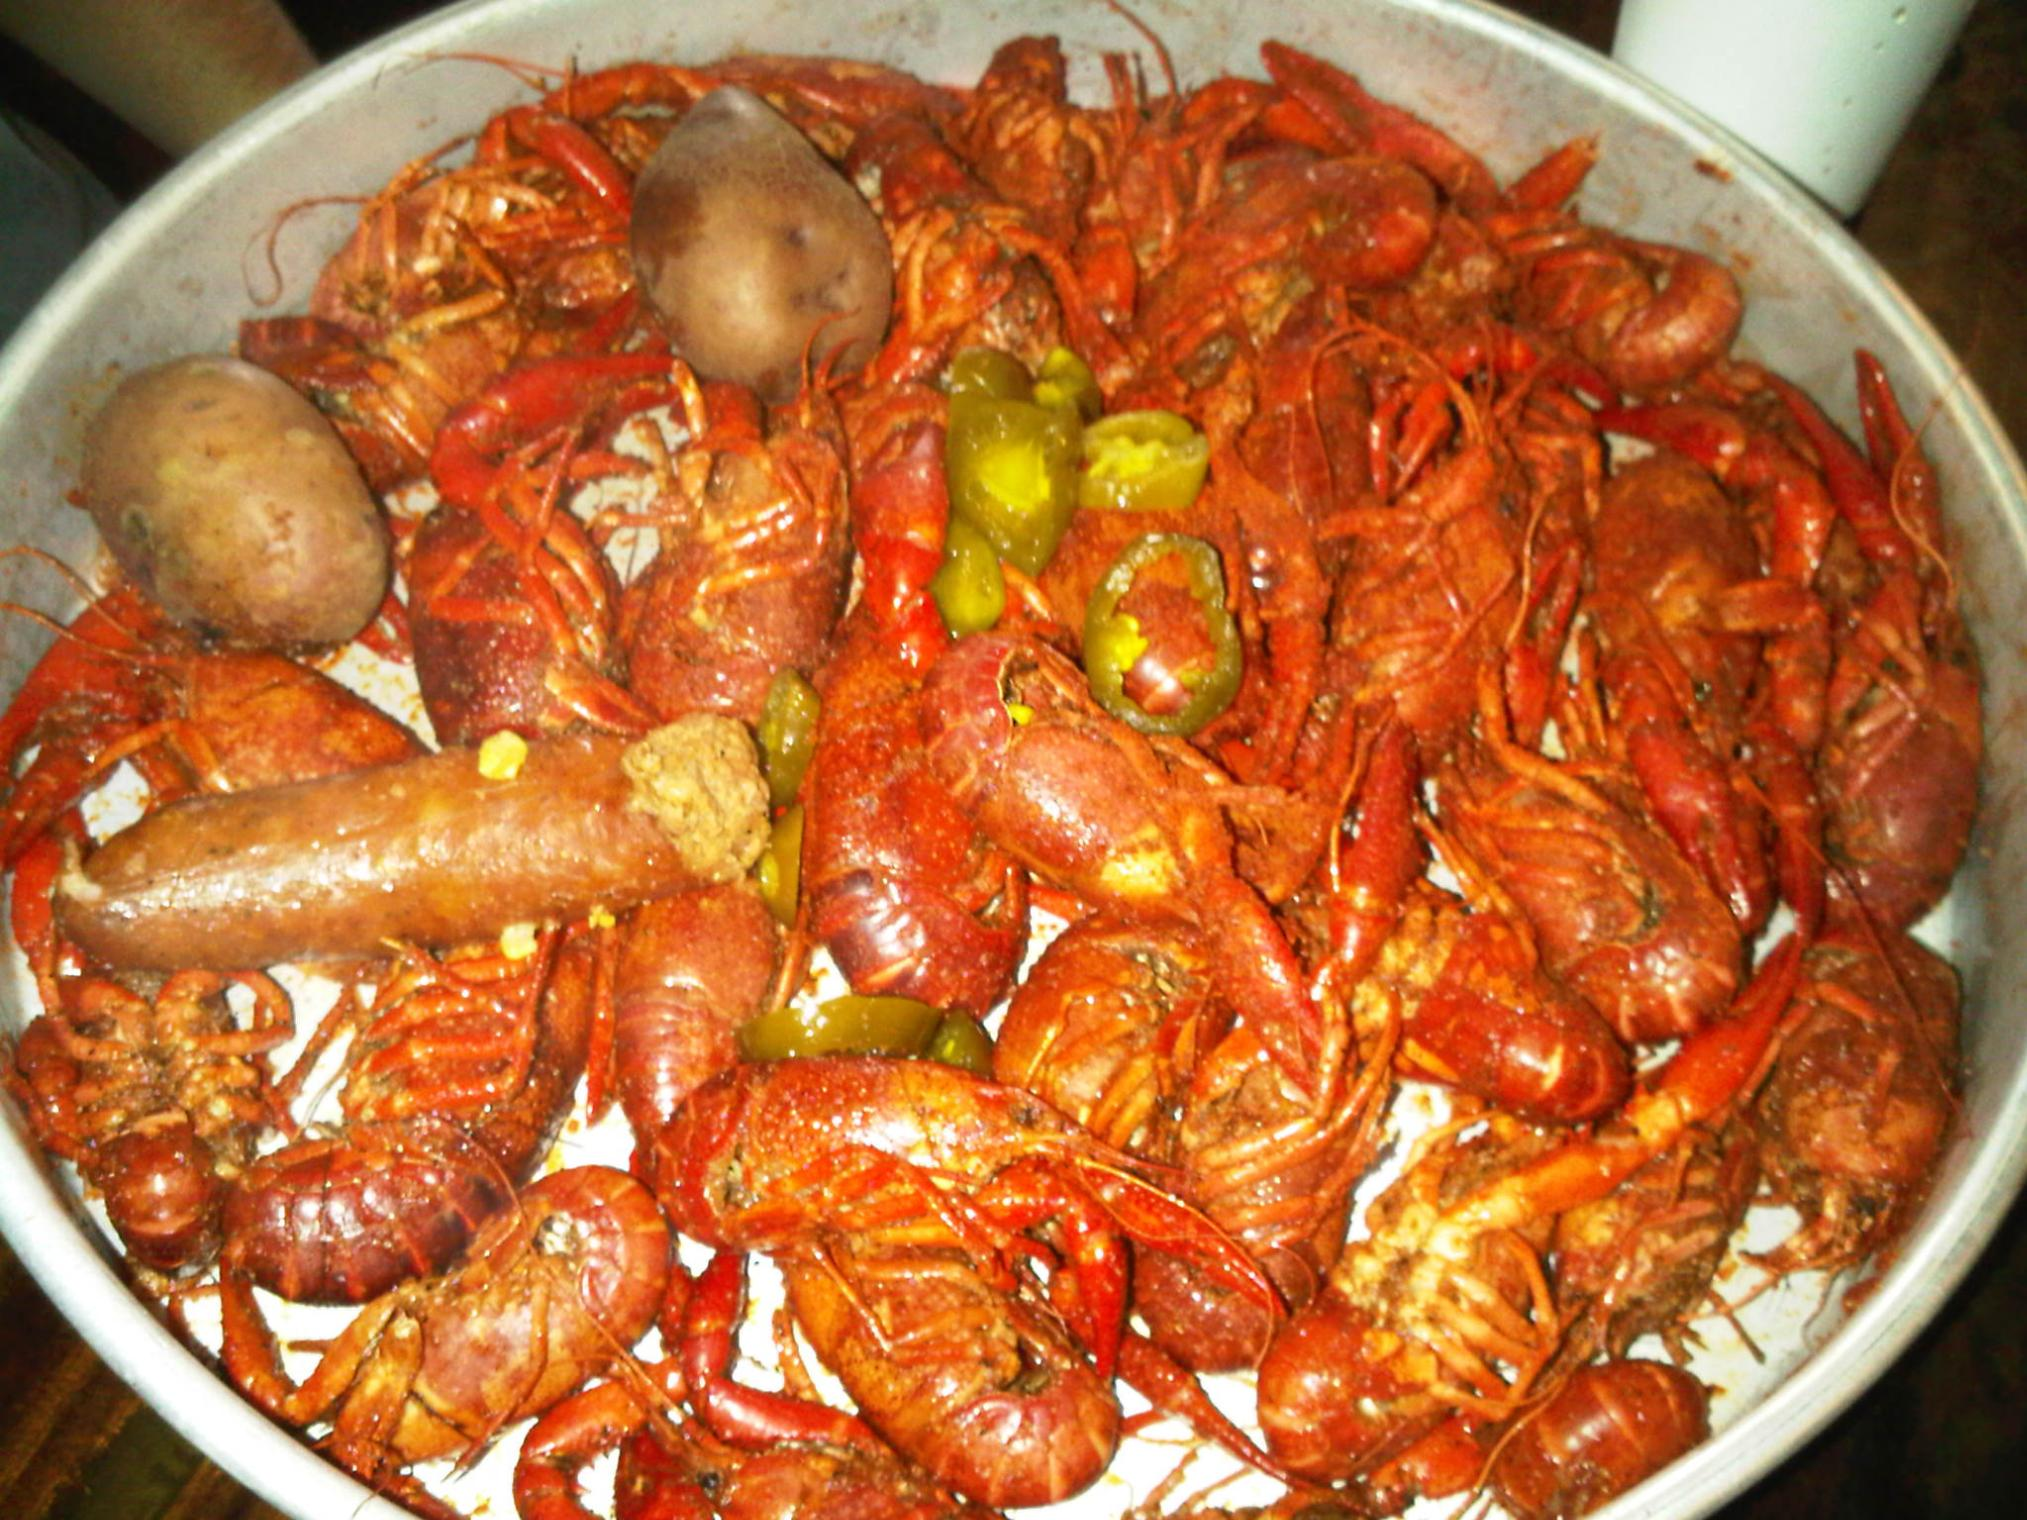 That Way They Can Suck Up All Those Spices, Peppers And Crawfish Boil That  Gives Em A Good, Dark Coloration Like This